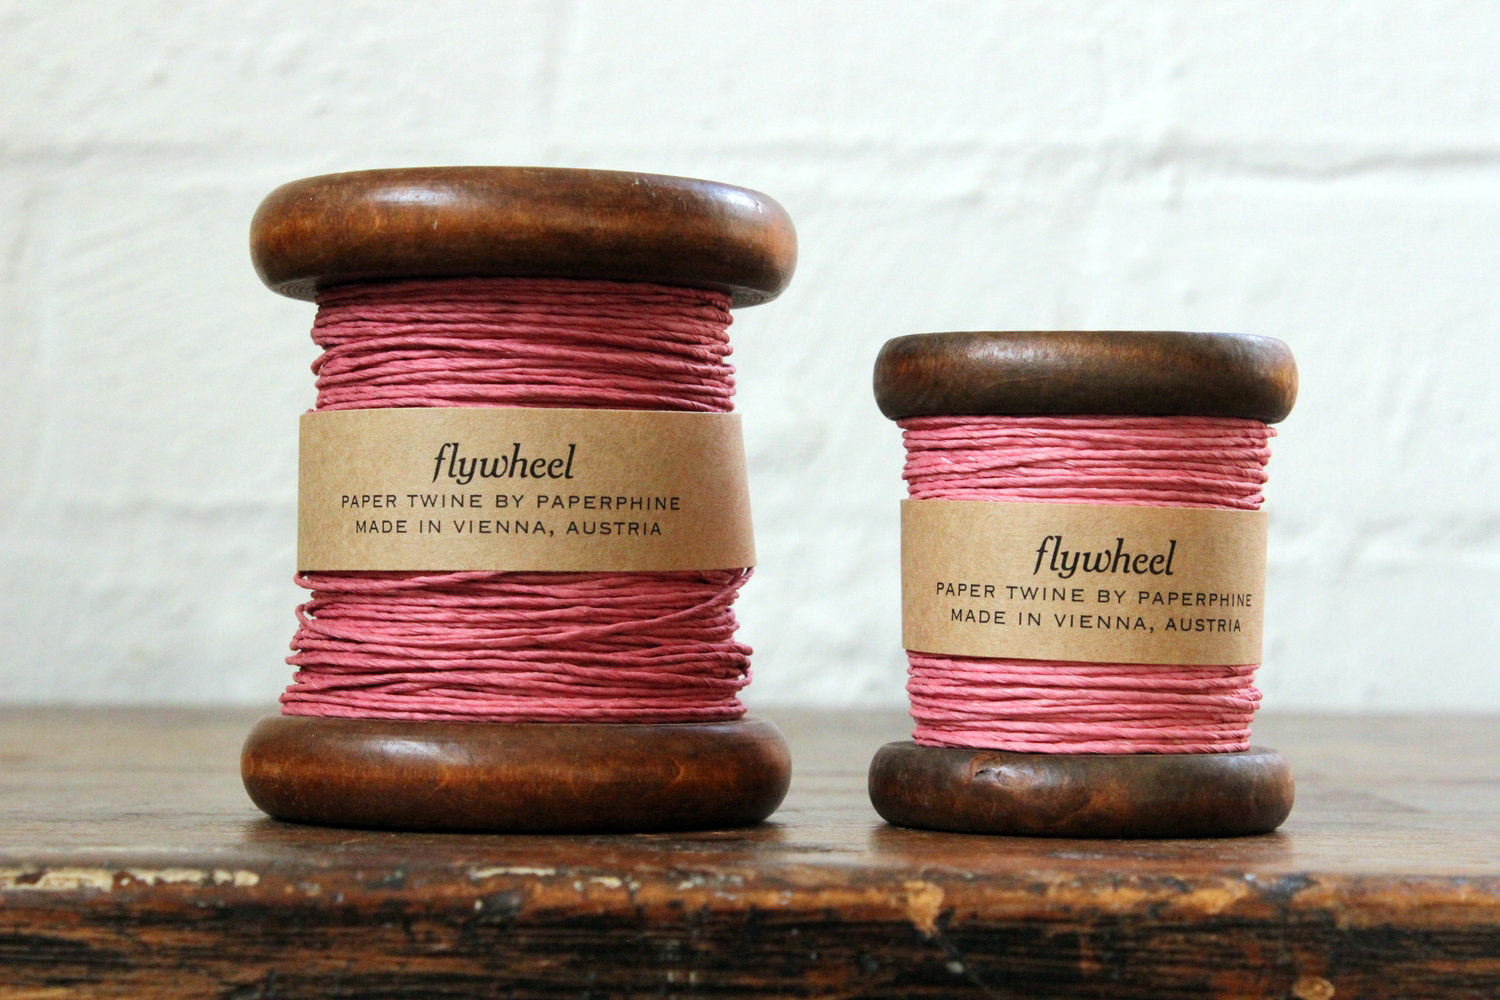 Paperphine Paper Twine on Wooden Spool - Dusty Pink